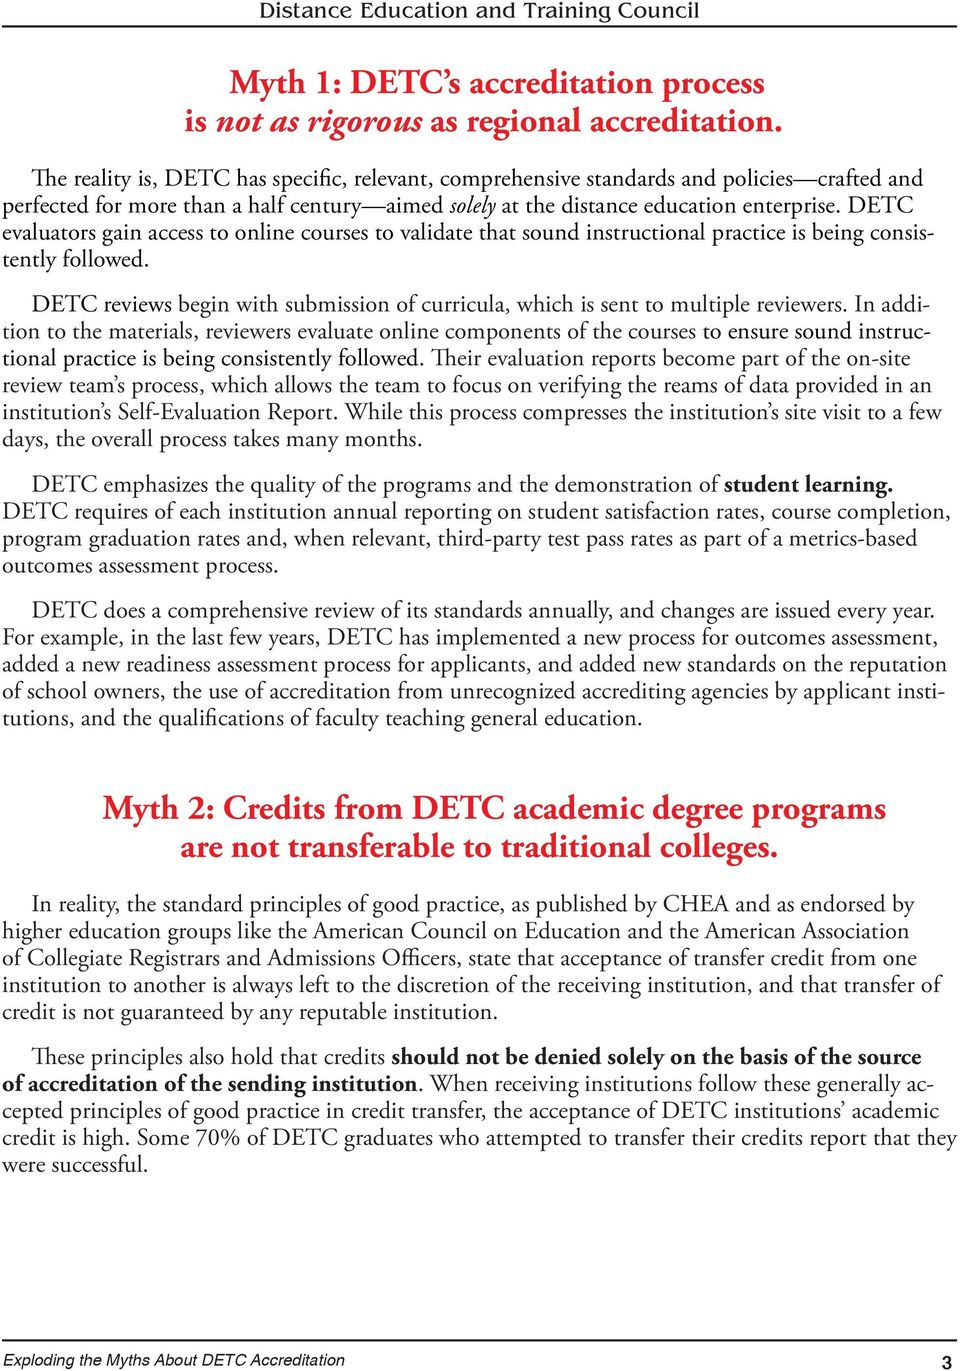 DETC evauators gain access to onine courses to vaidate that sound instructiona practice is being consistenty foowed. DETC reviews begin with submission of curricua, which is sent to mutipe reviewers.